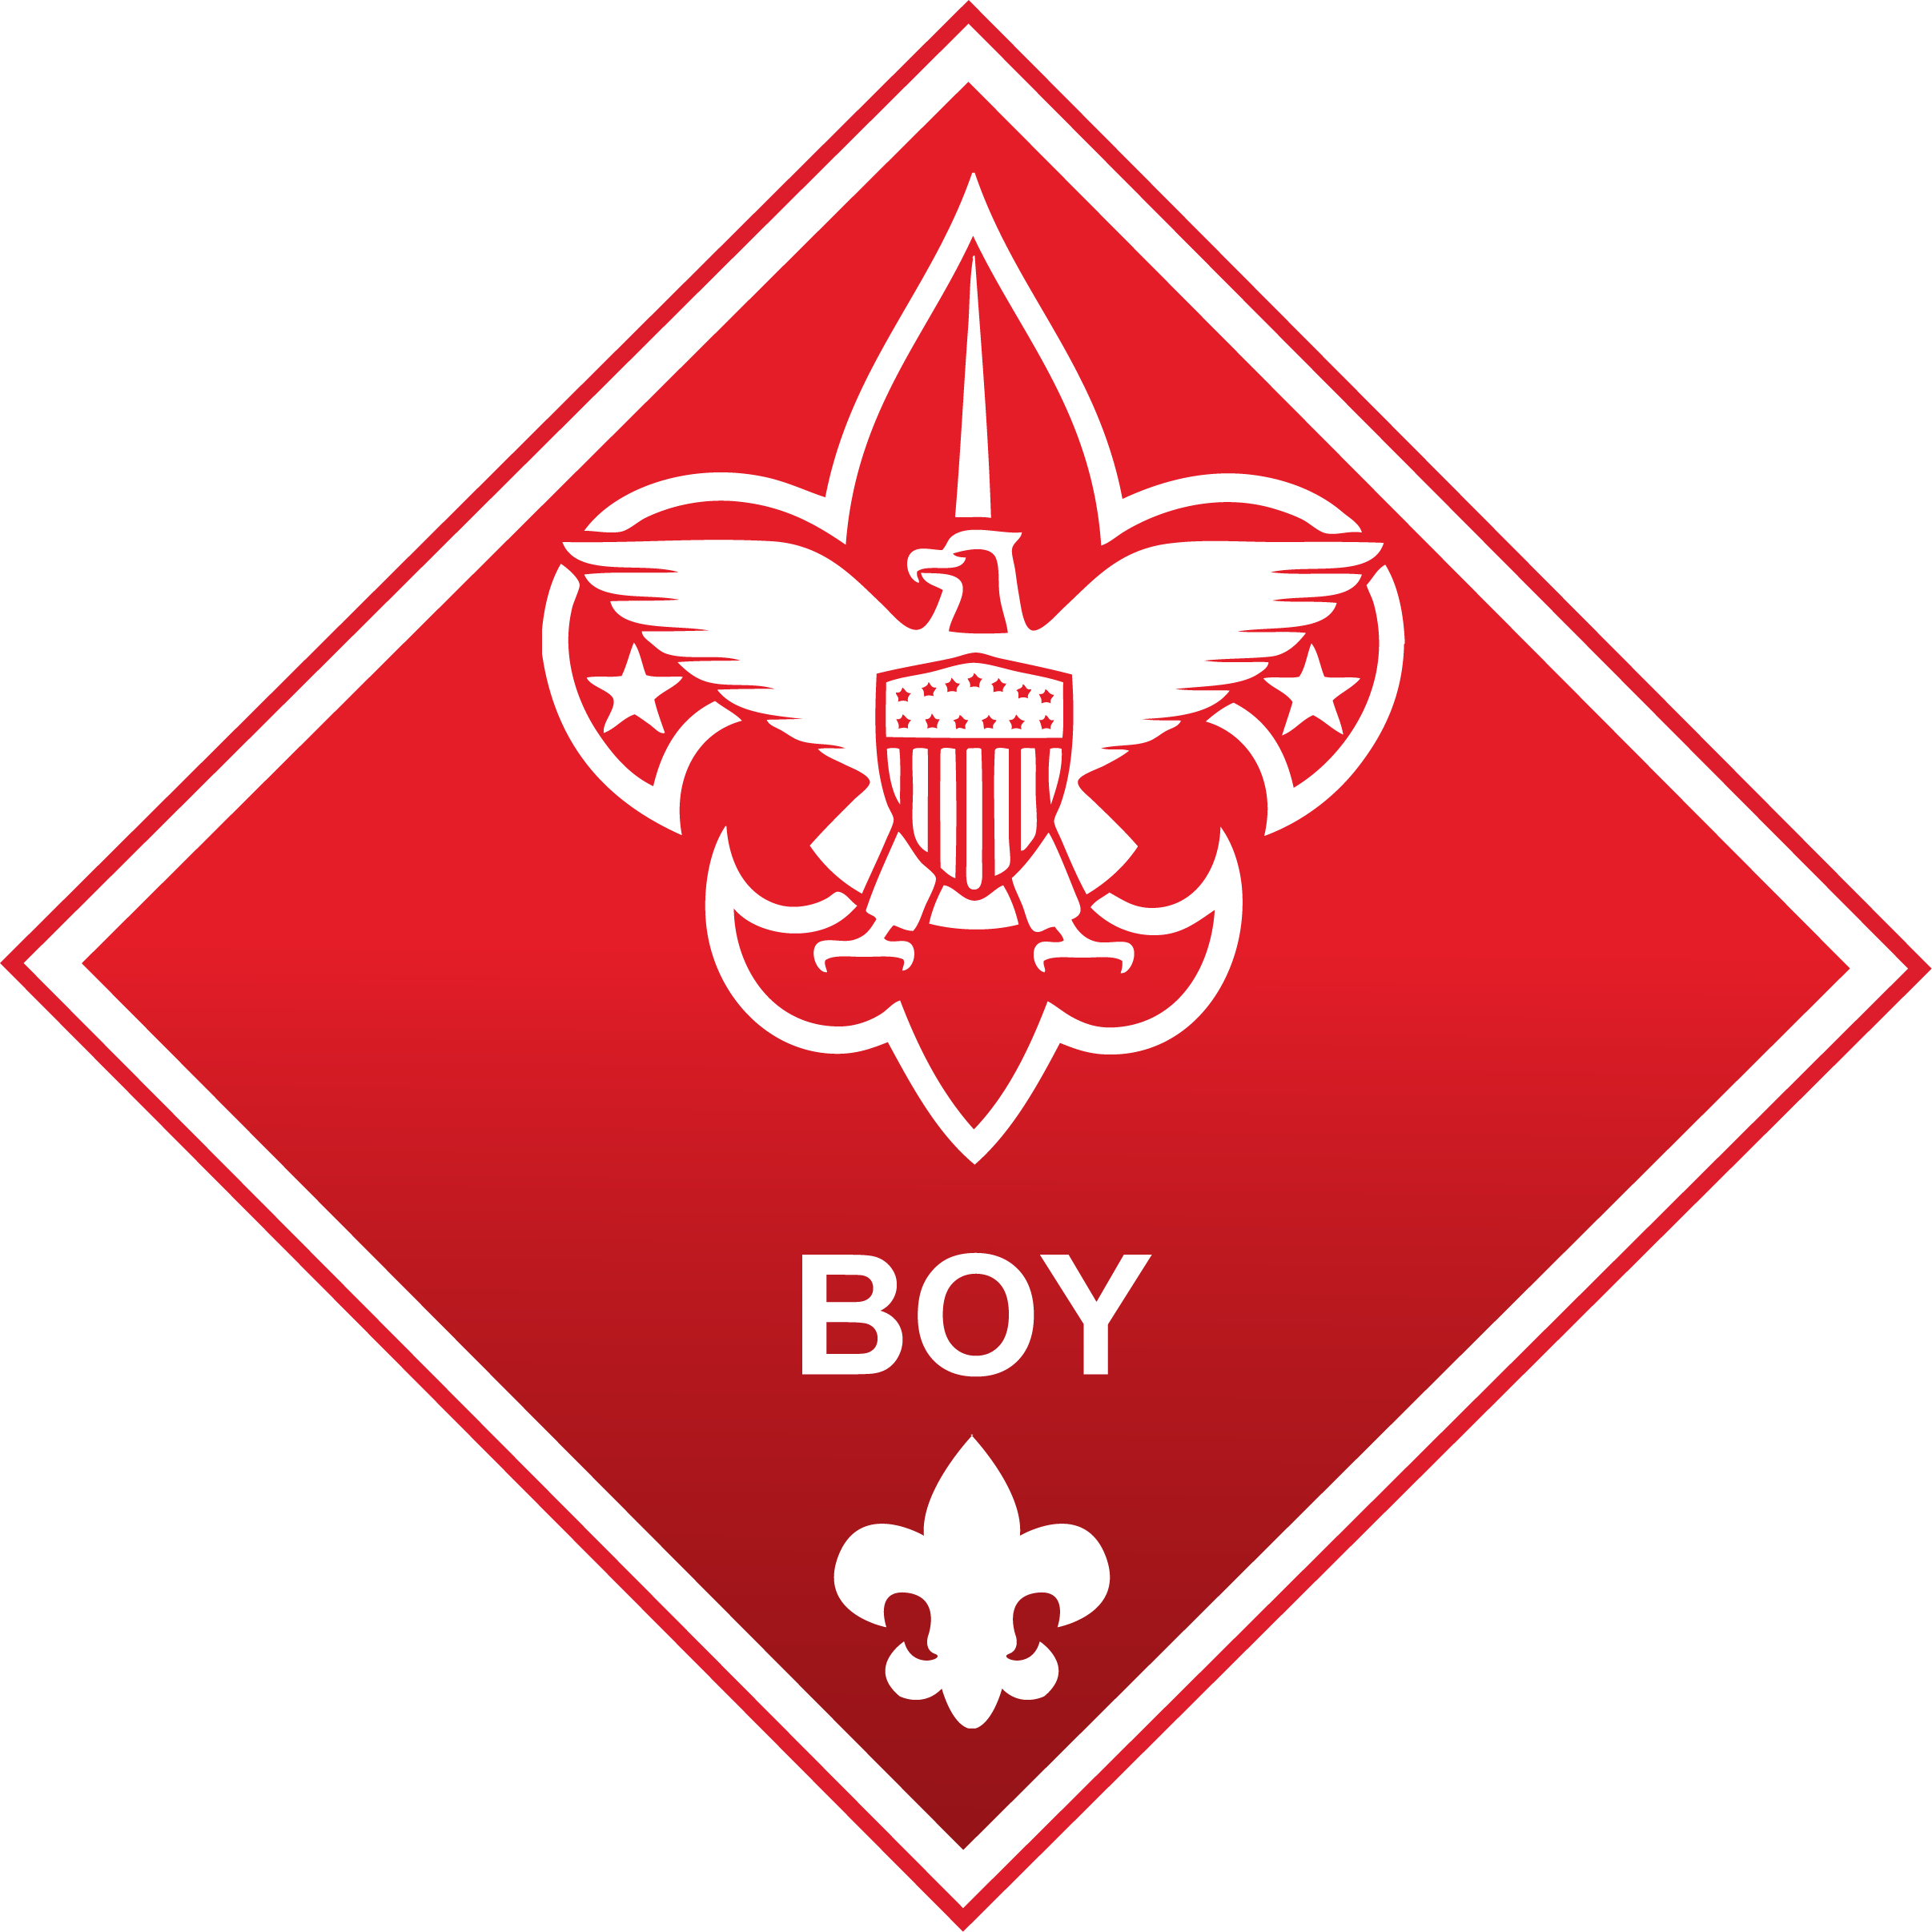 The Academy of Racing Boy Scouts of America, Automotive